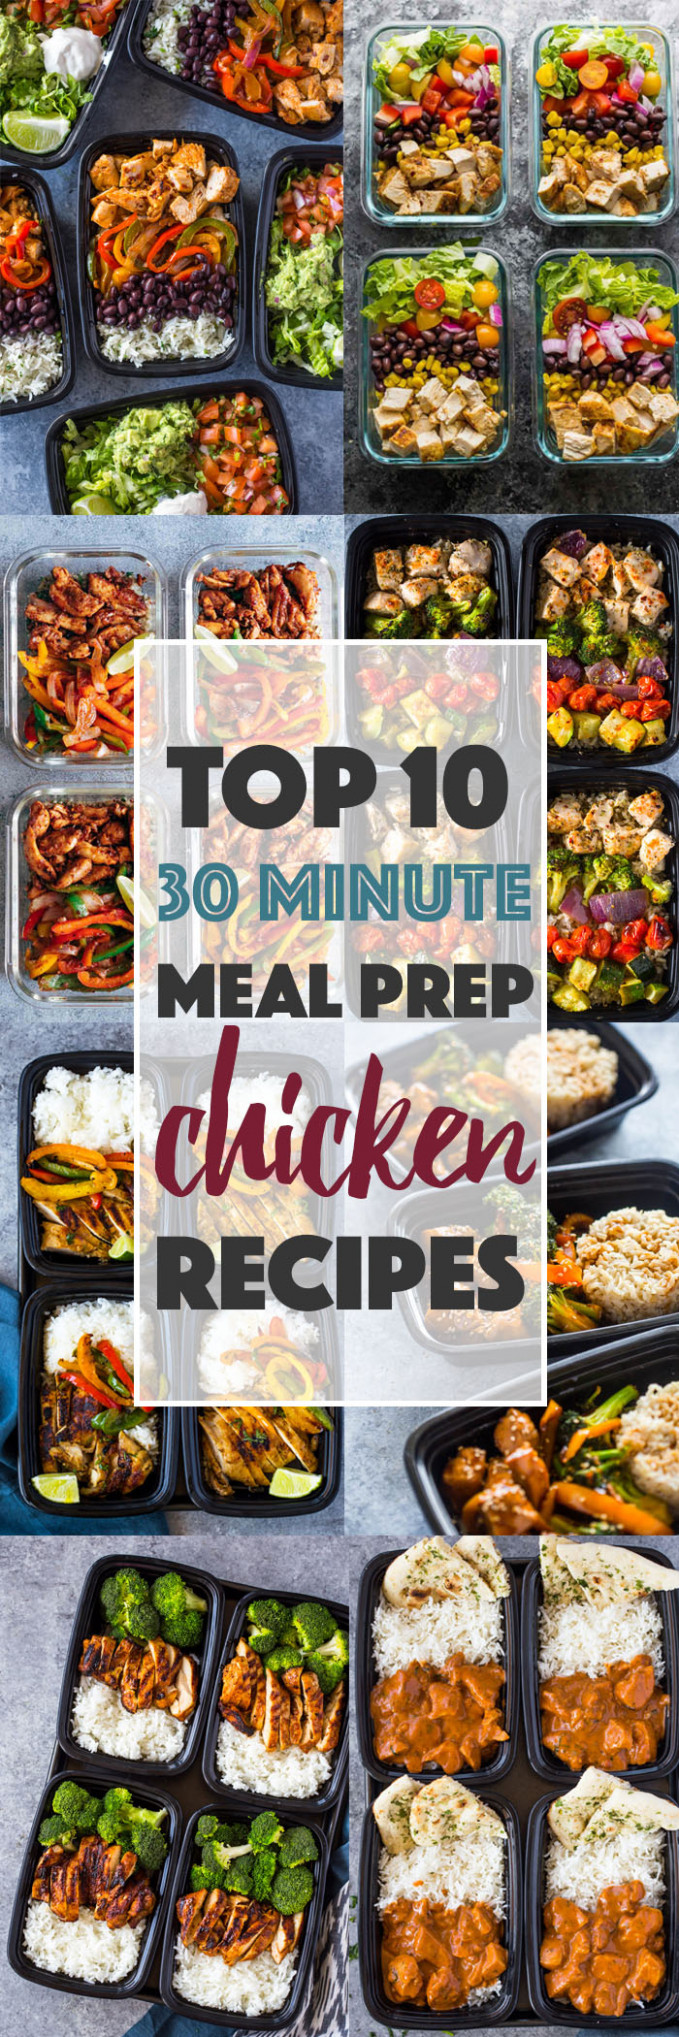 Top 14 (14 Minute) Meal-prep Chicken Recipes | Gimme Delicious - chicken recipes quick